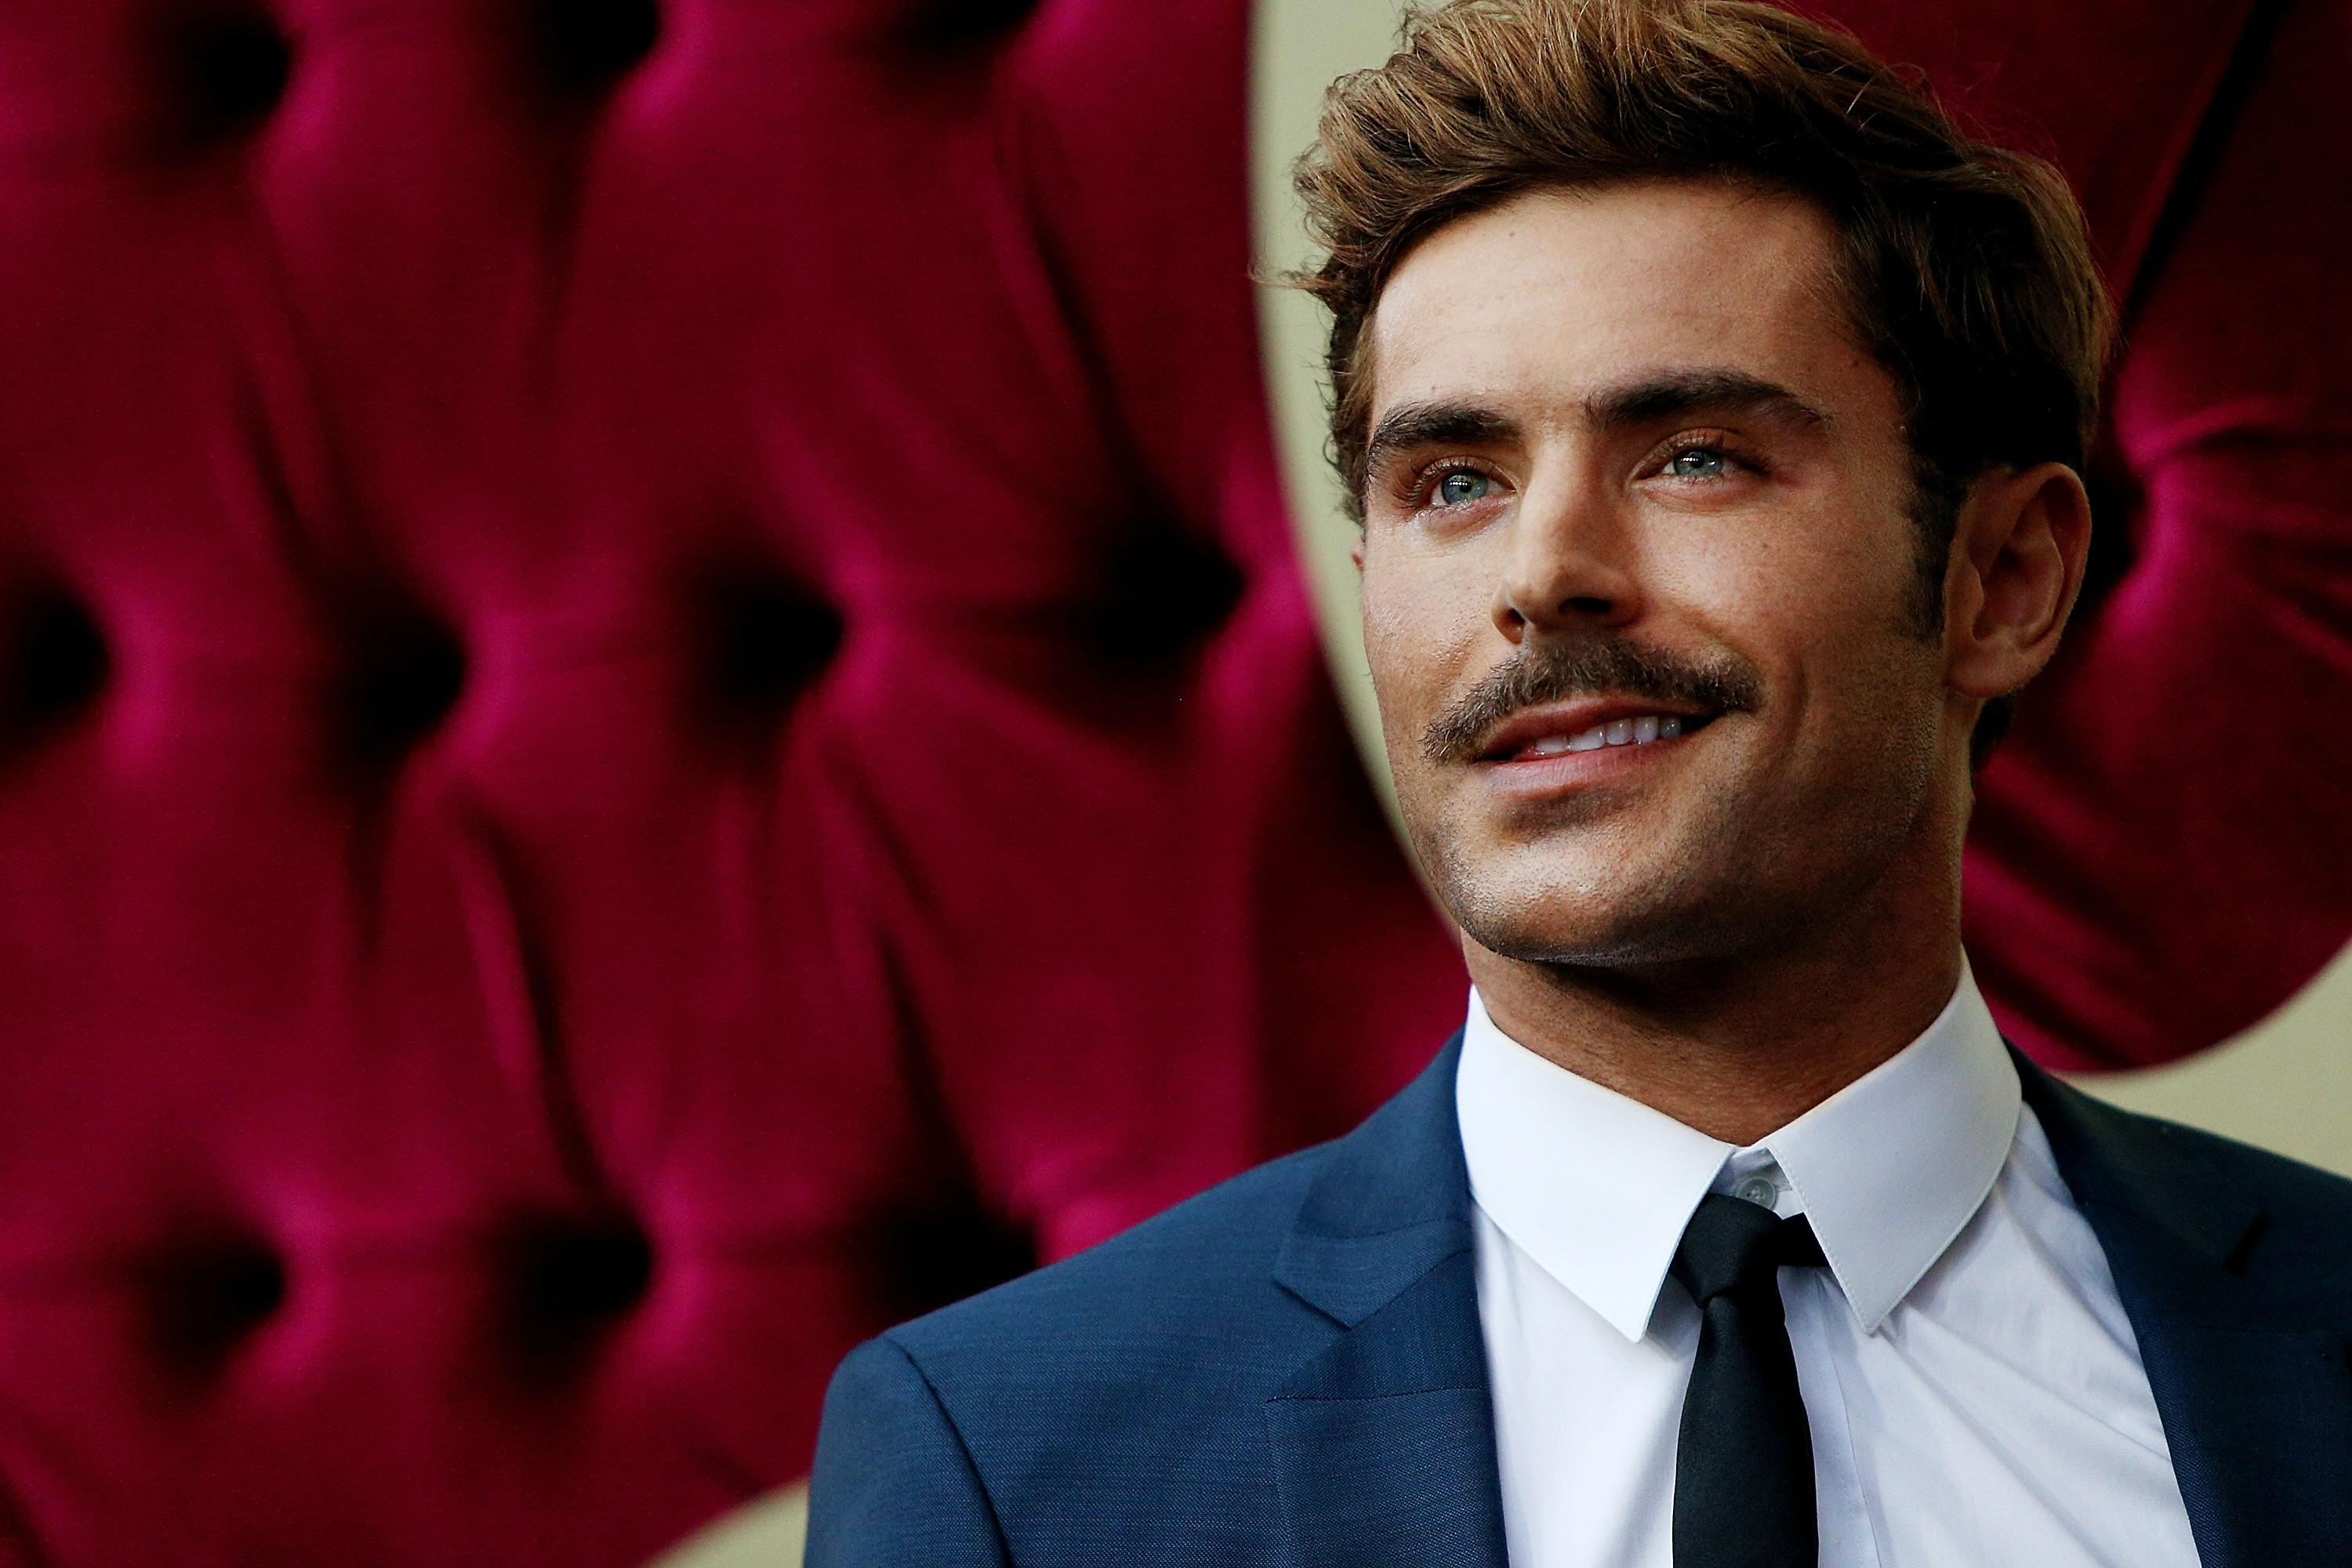 Zac effron is that you if you could dive